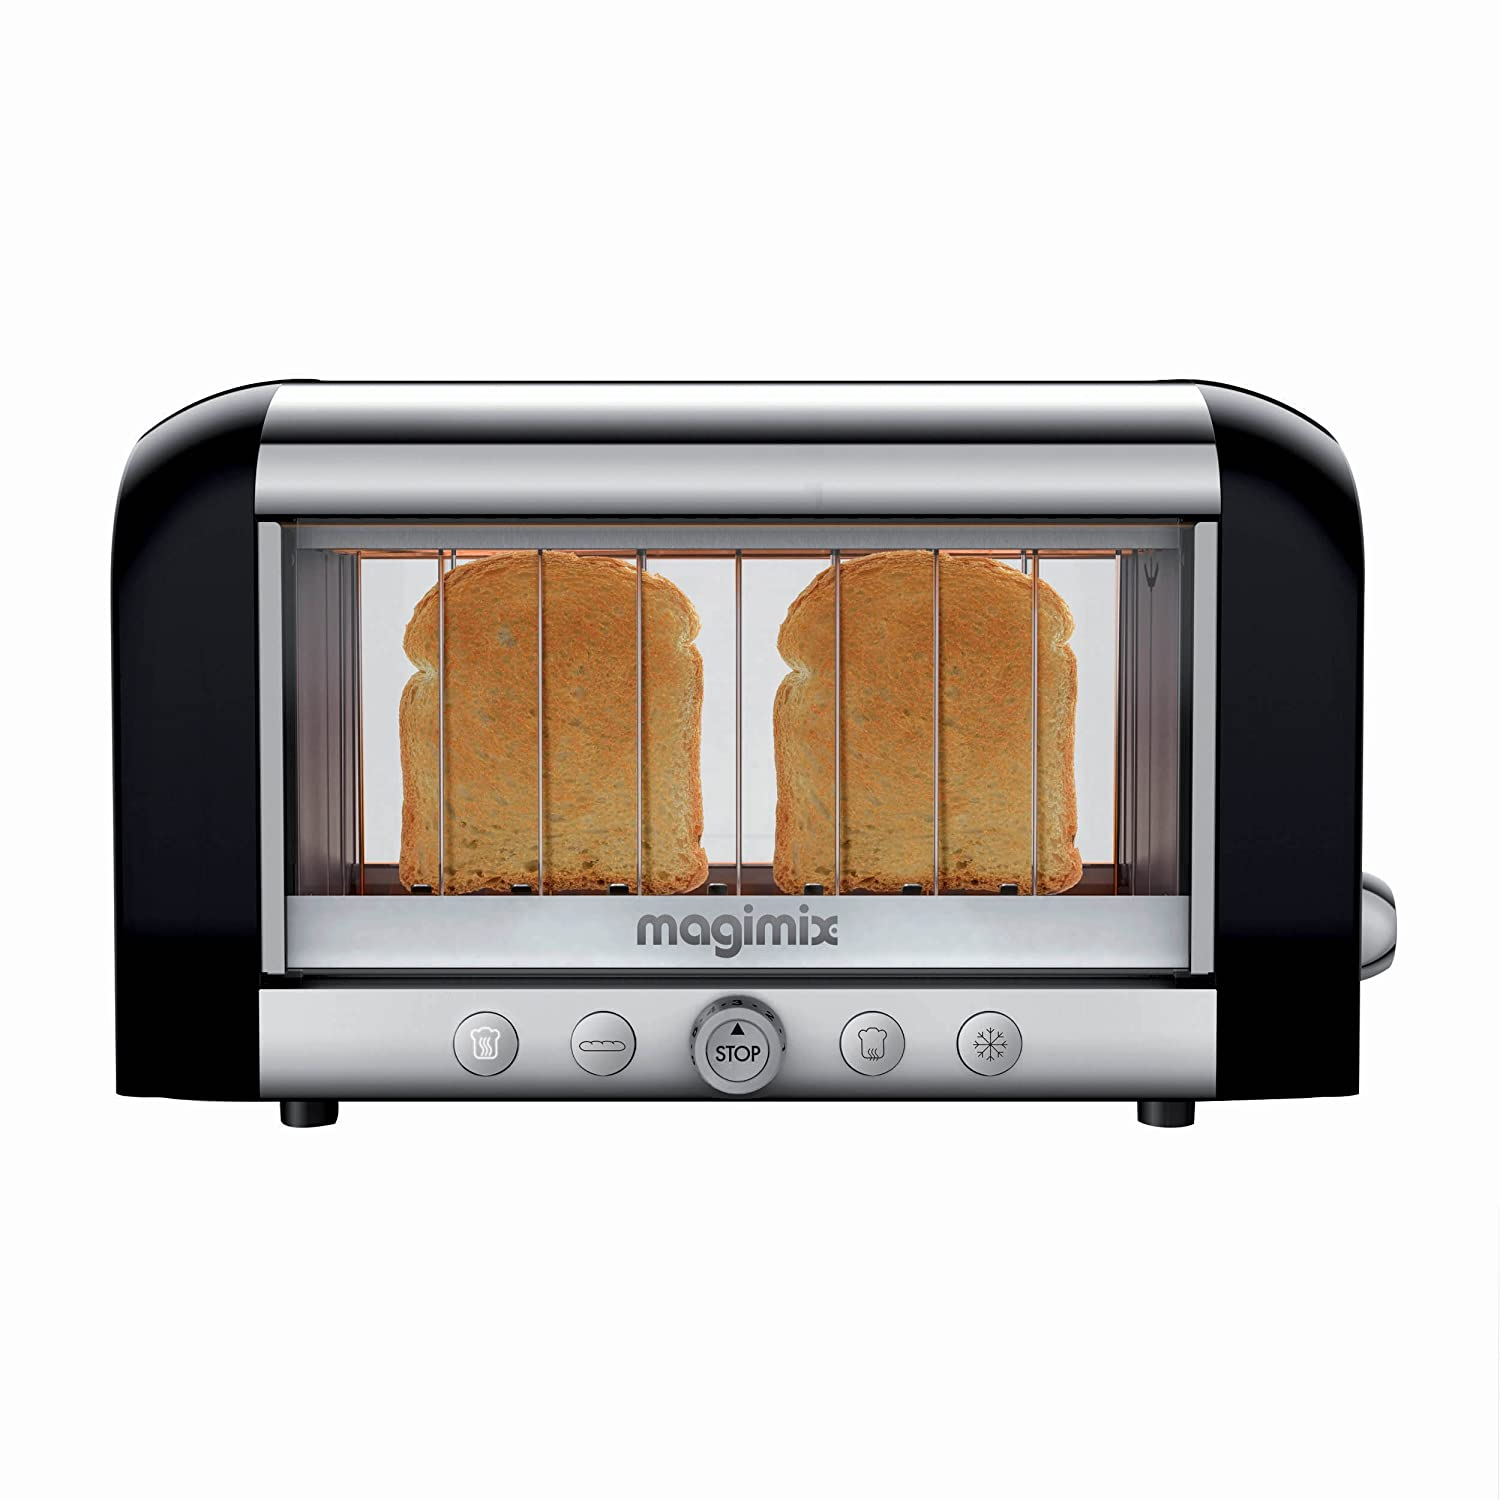 Magimix Vision Toaster (Black) - 11529LC See Through Panel